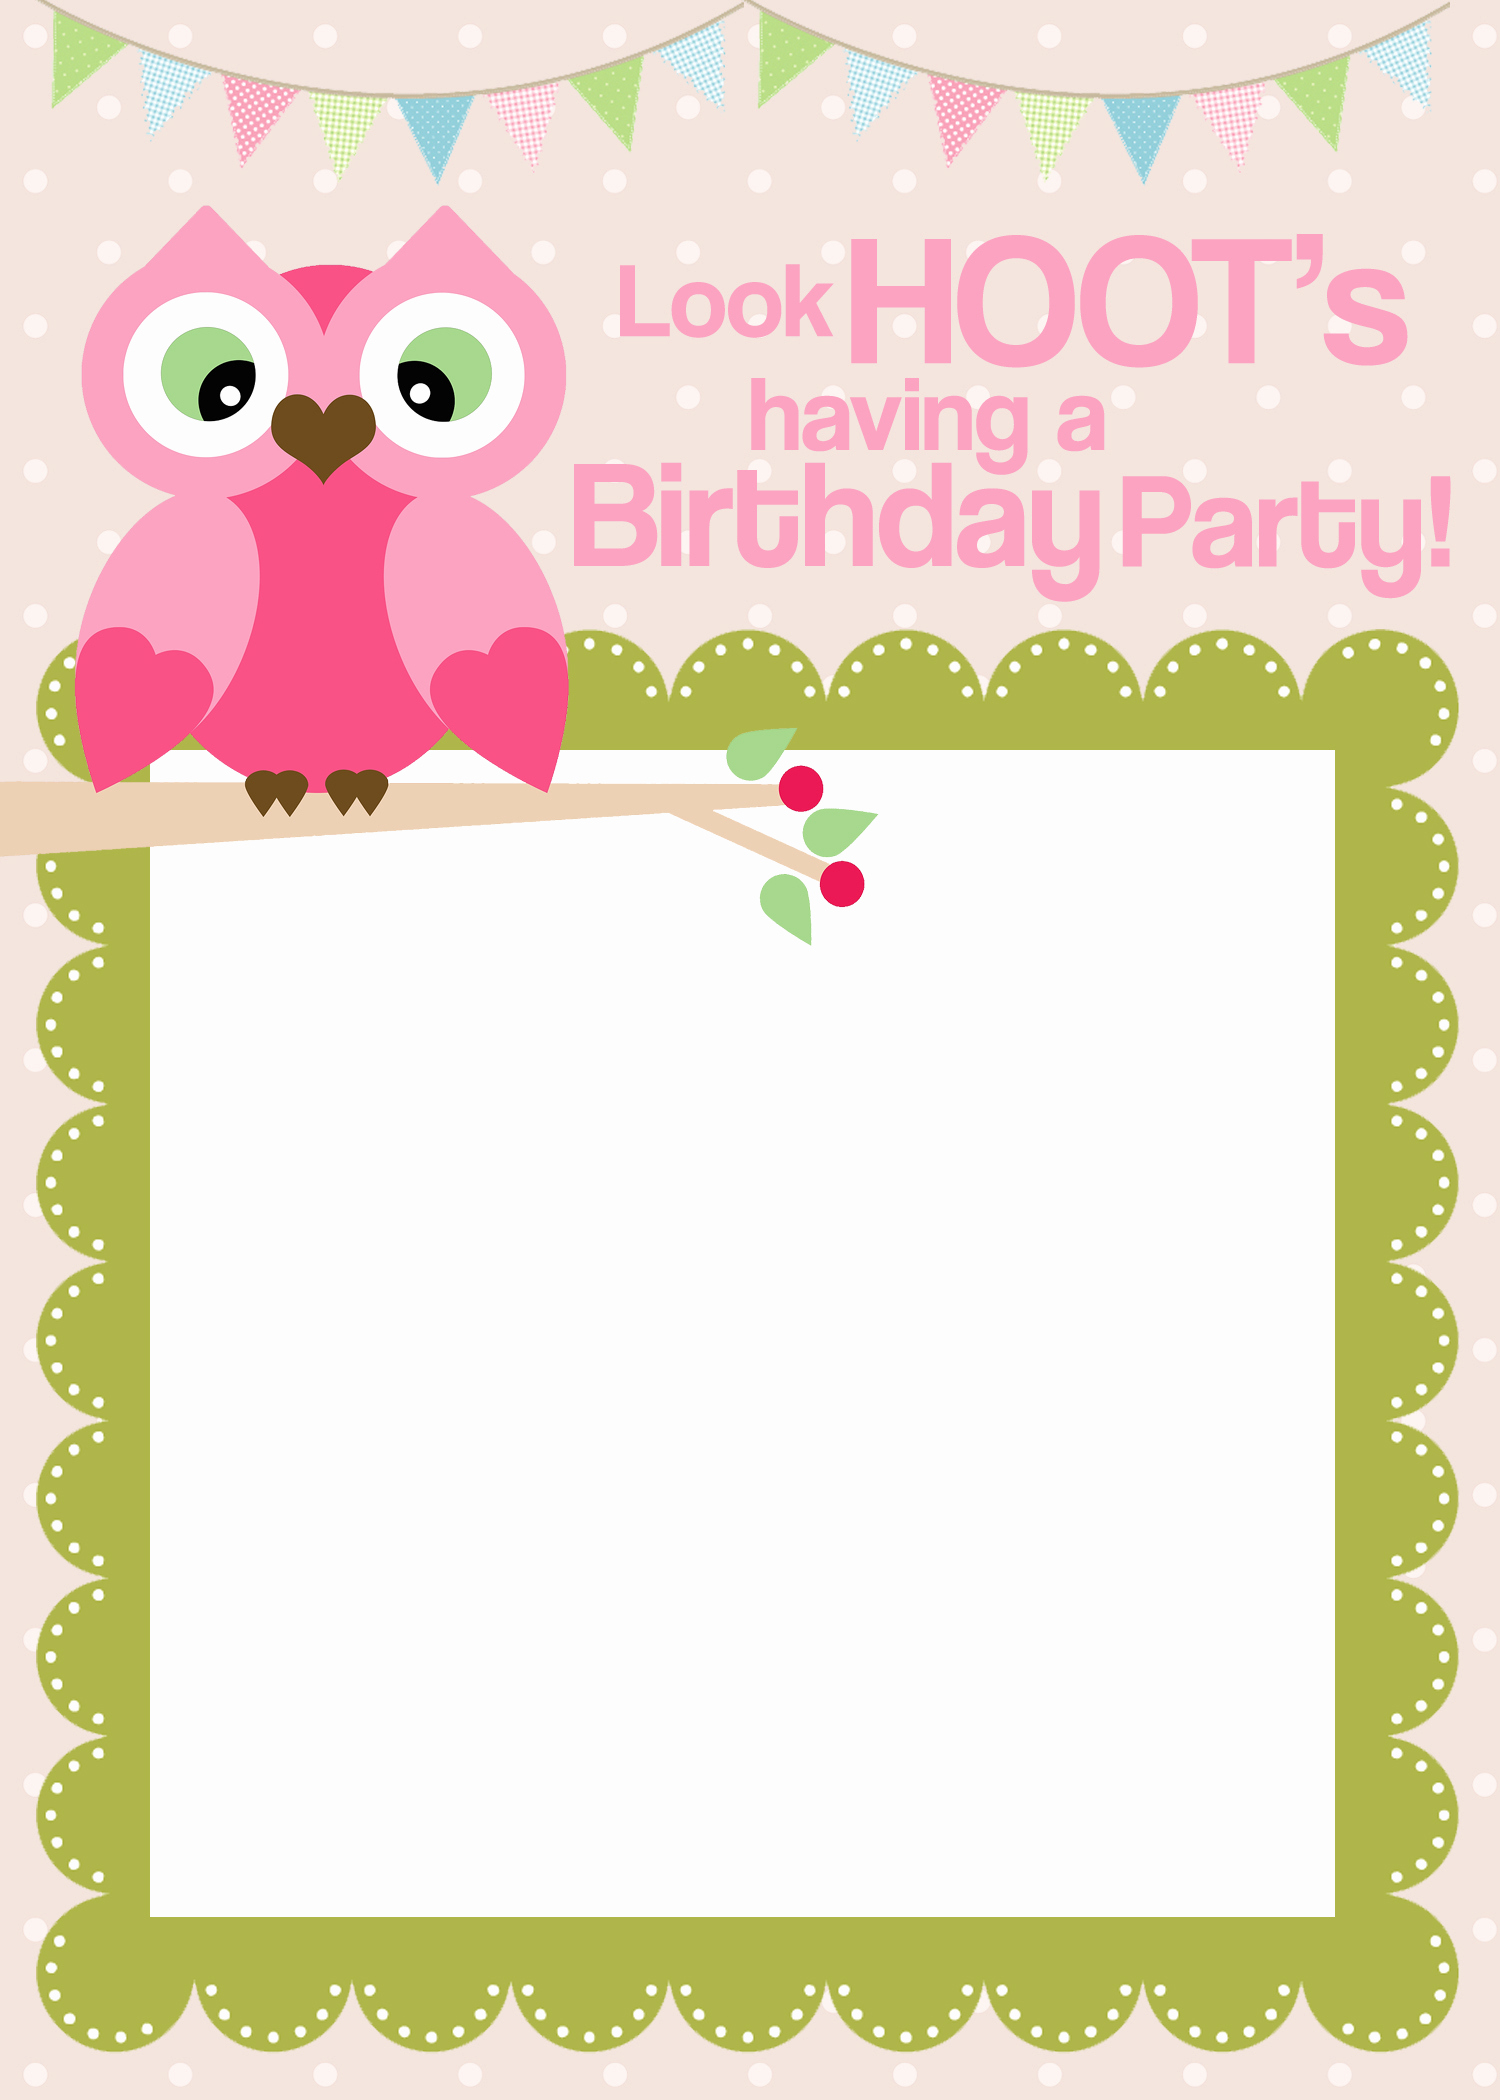 Invitation Card for Birthday Beautiful Birthday Invitation Happy Birthday Invitation Cards